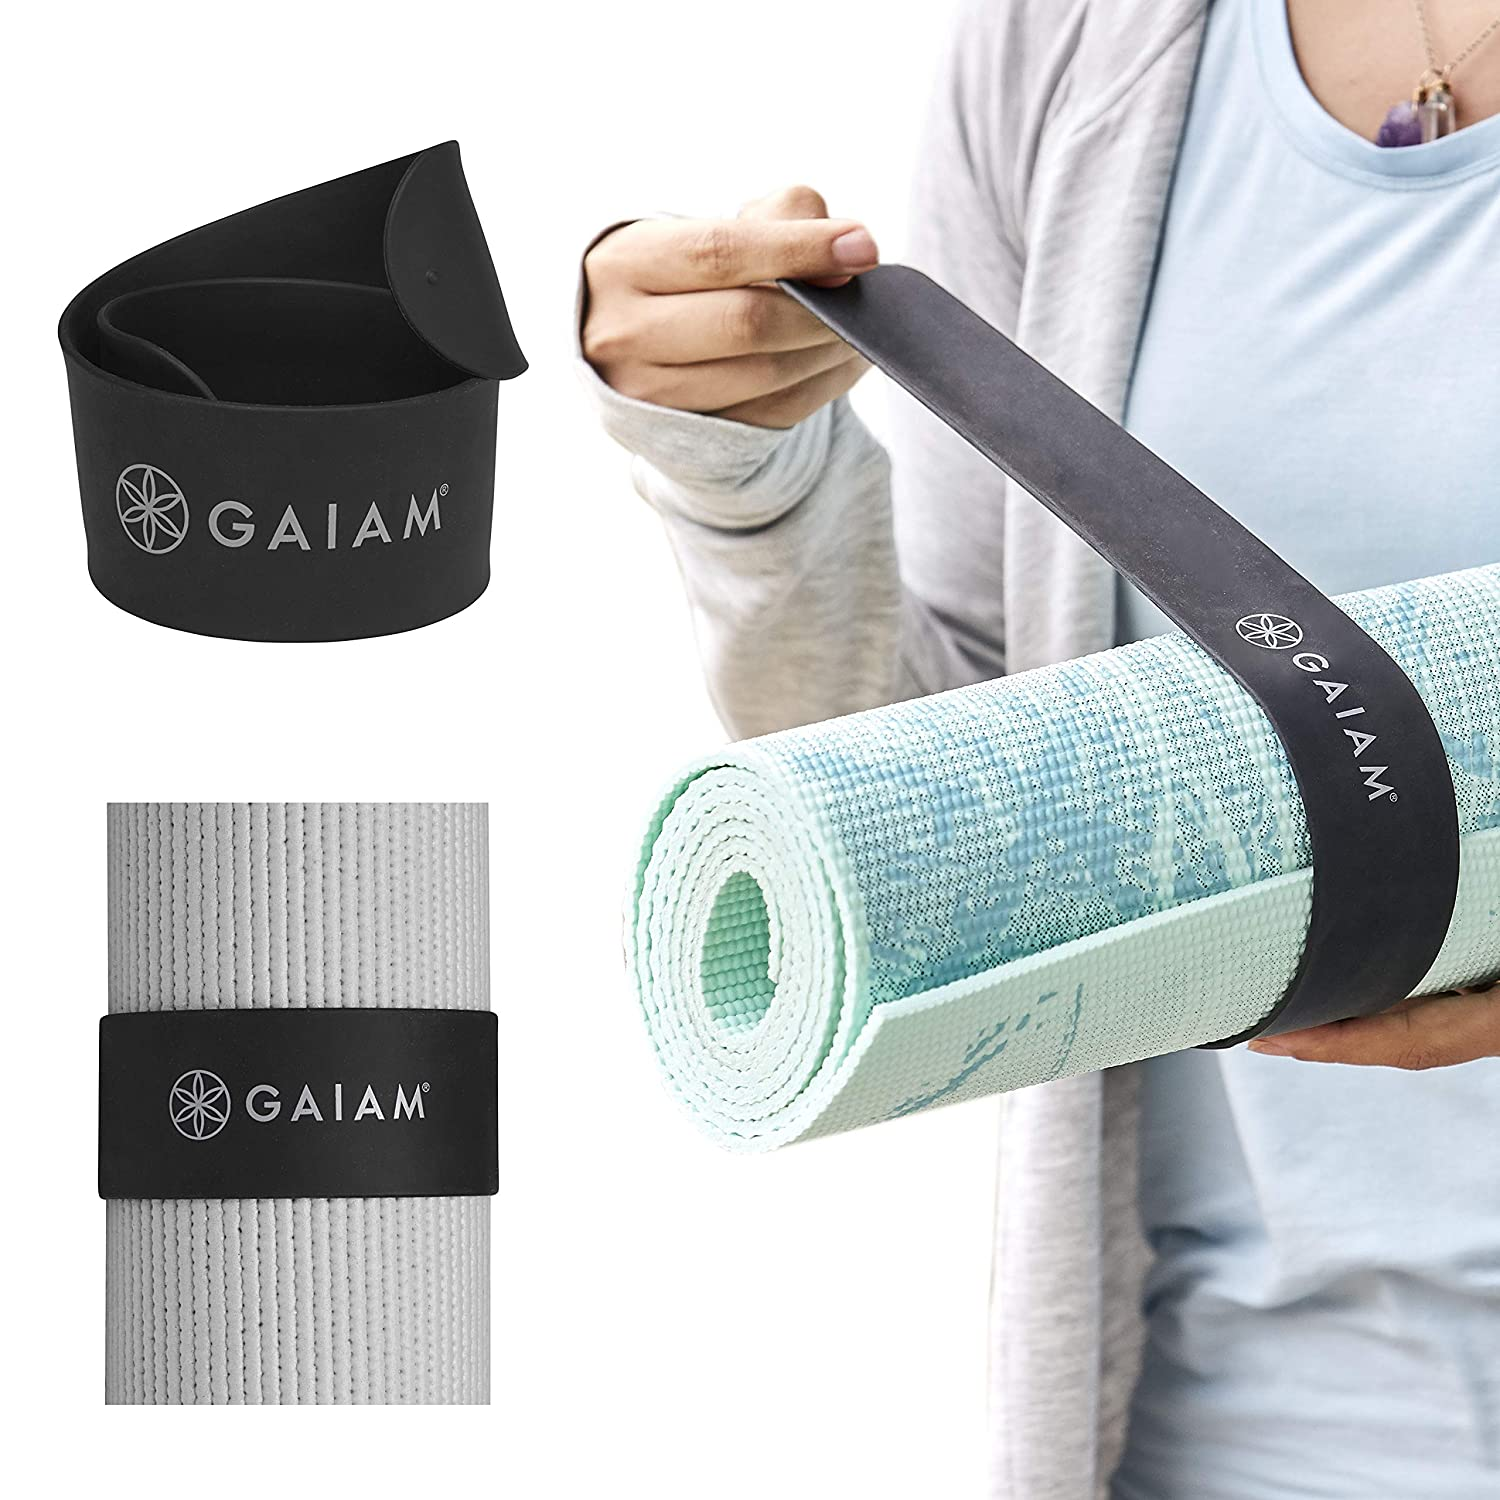 Gaiam Yoga Mat Strap Slap Band - Keeps Your Mat Tightly Rolled and Secure, Fits Most Size Mats (20